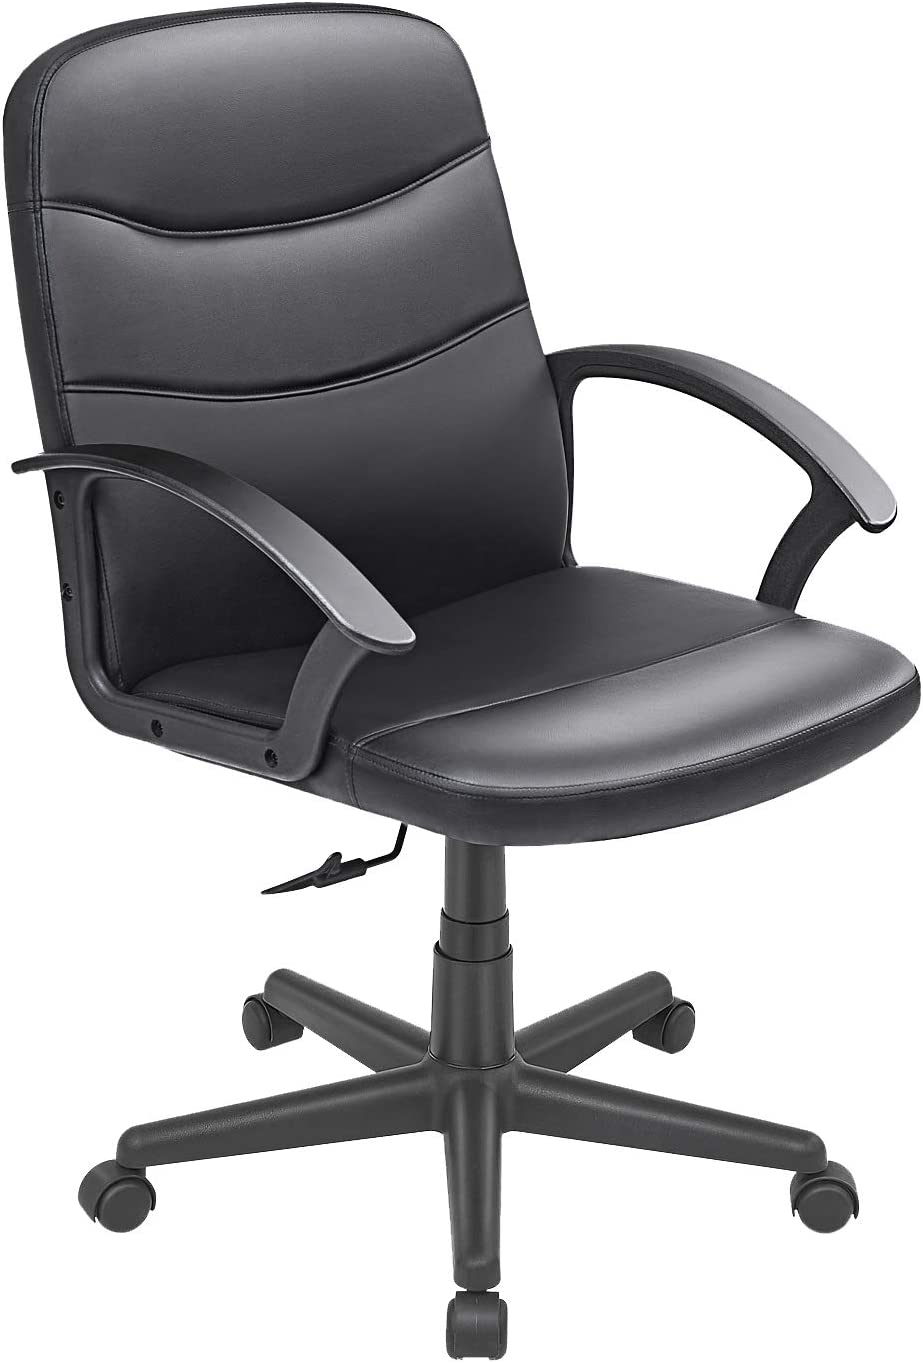 Bowthy Computer Desk Office Chair with Arms Executive Task Chair 360 Swivel Chair Mid Back PU Leather (Black)